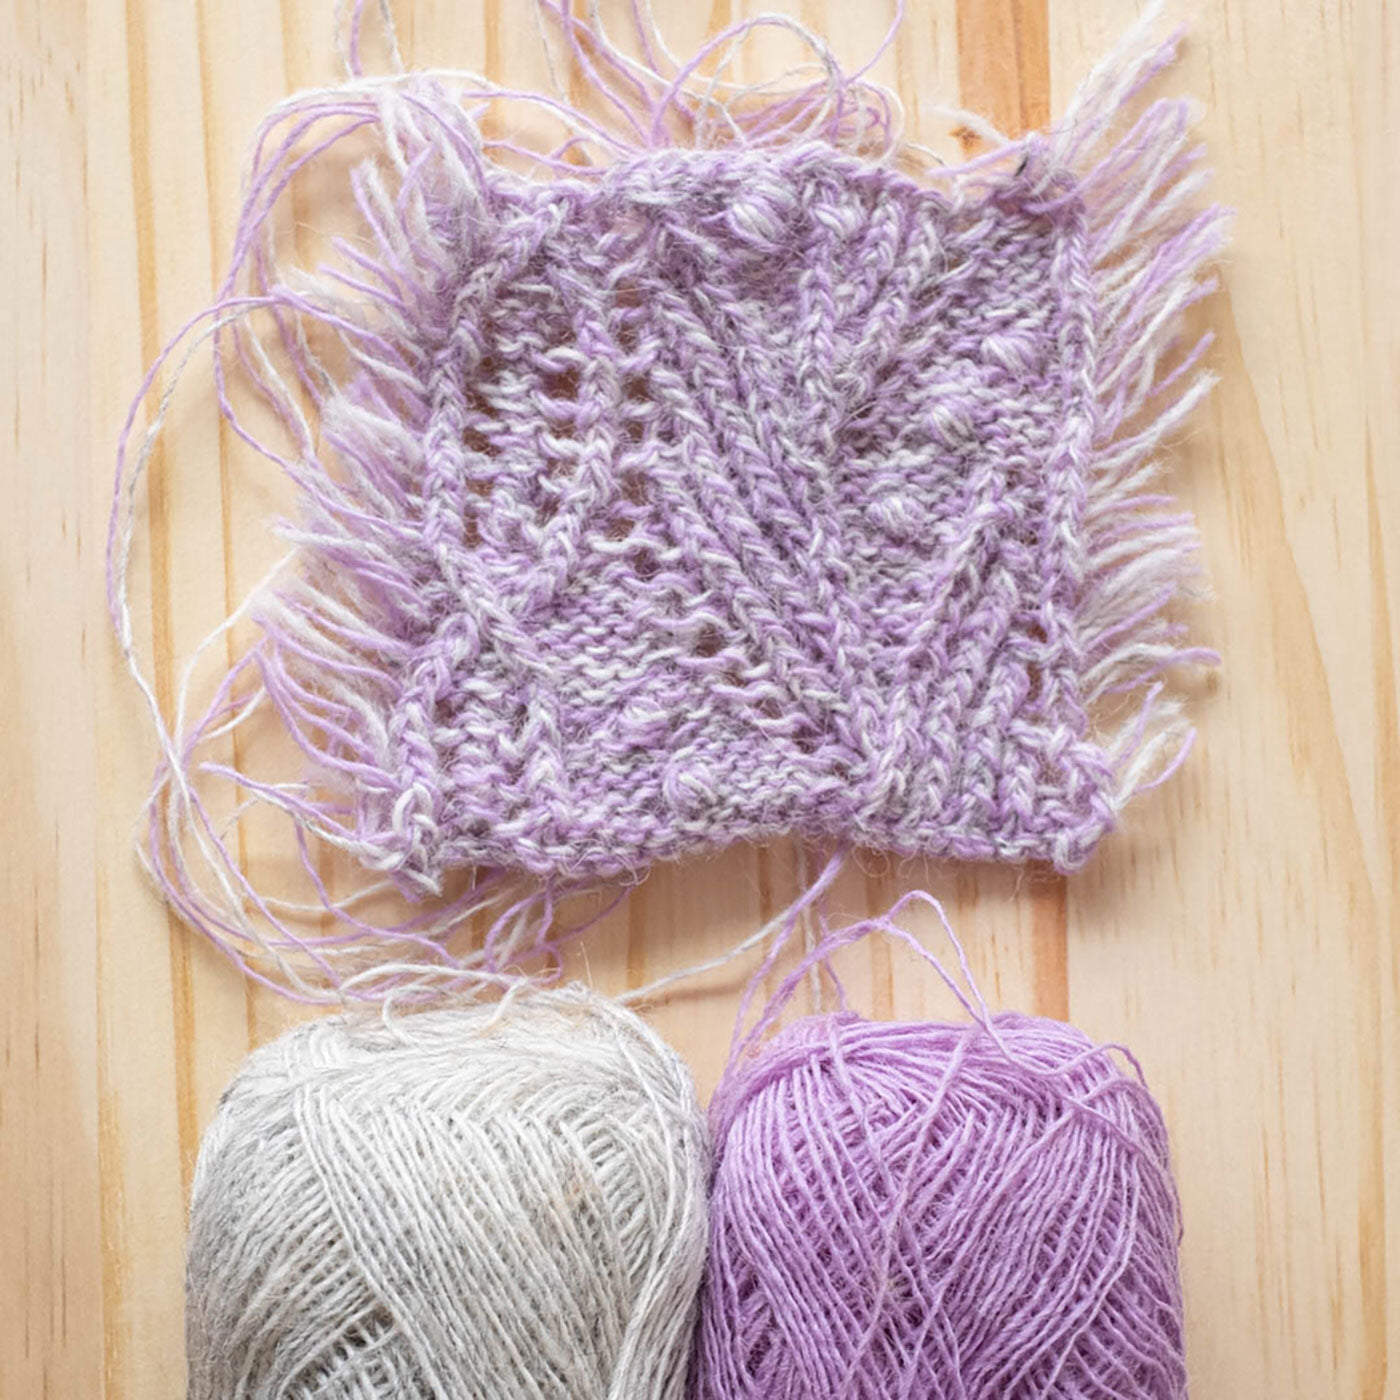 A knitted swatch for the Atlantica Pullover in a marl of two colors held together: Lavender and Light Ash Heather— lays on a background of light unfinished pine wood. The swatch features a delicate cabled lace. Two yarn balls in Lavender and Grey peek into the bottom of the picture.